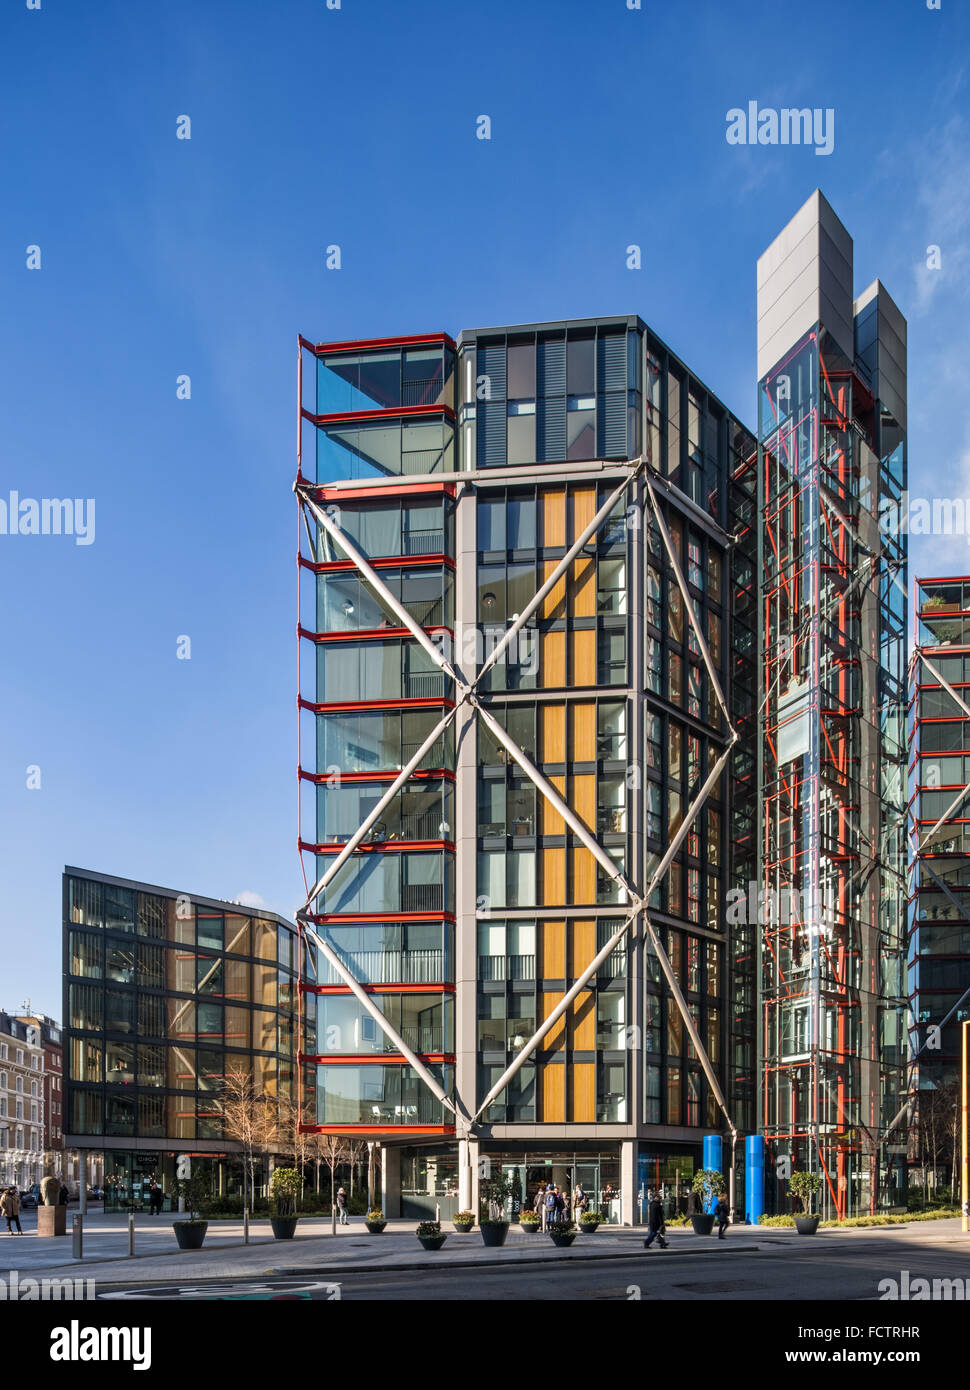 Neo Bankside Apartments designed by Rogers Stirk Harbour + Partners and shortlisted for the RIBA Stirling Prize - Stock Image